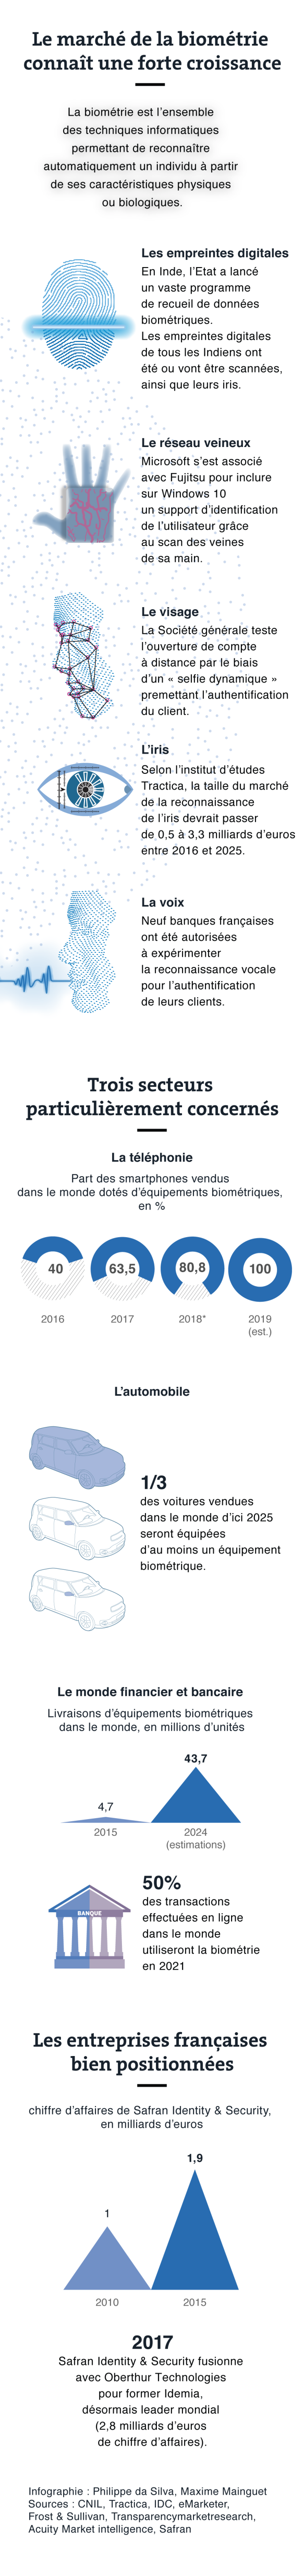 Applications de la biométrie dans la vie quotidienne